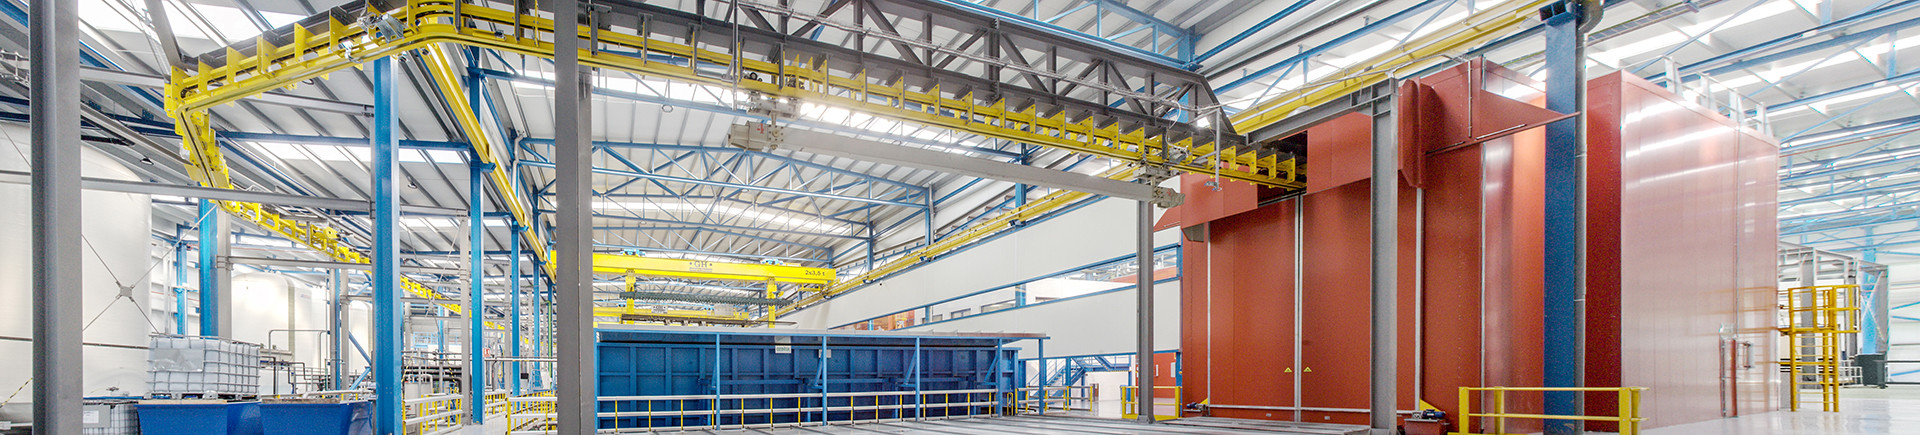 Flexible production lines